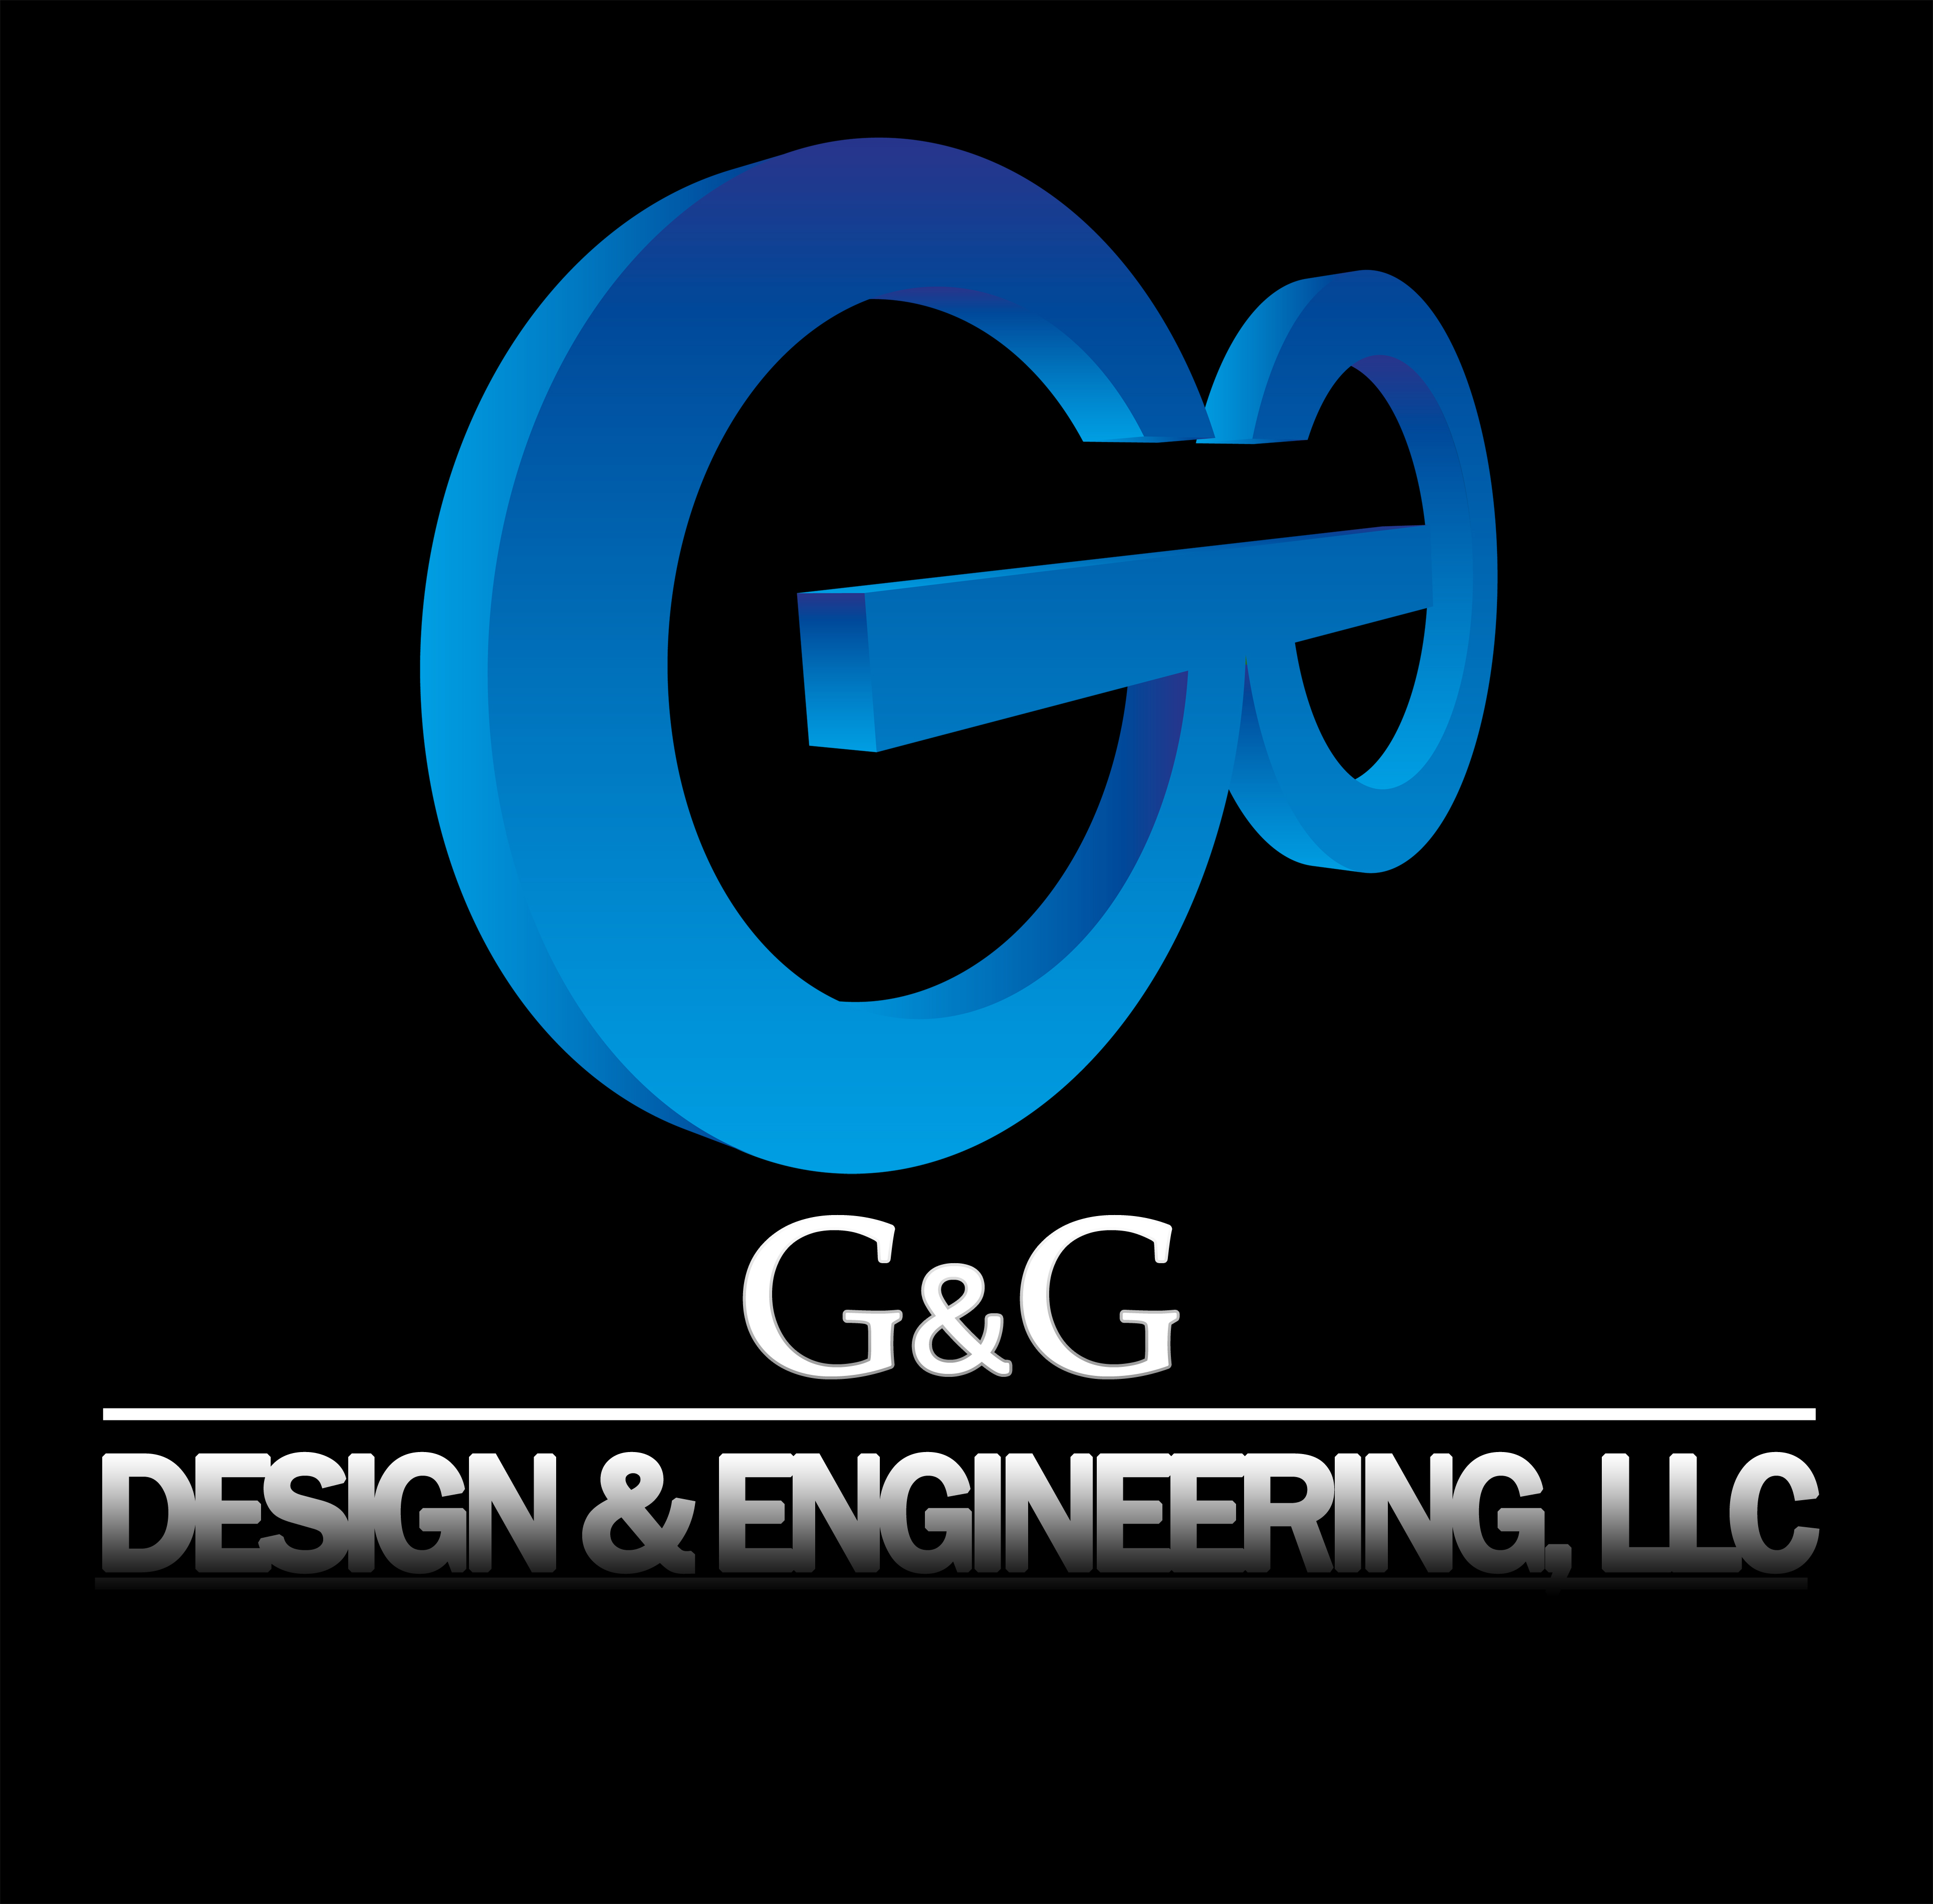 Logo Design by Ervin Beñez - Entry No. 90 in the Logo Design Contest Creative Logo Design for G&G Design and Engineering, LLC.